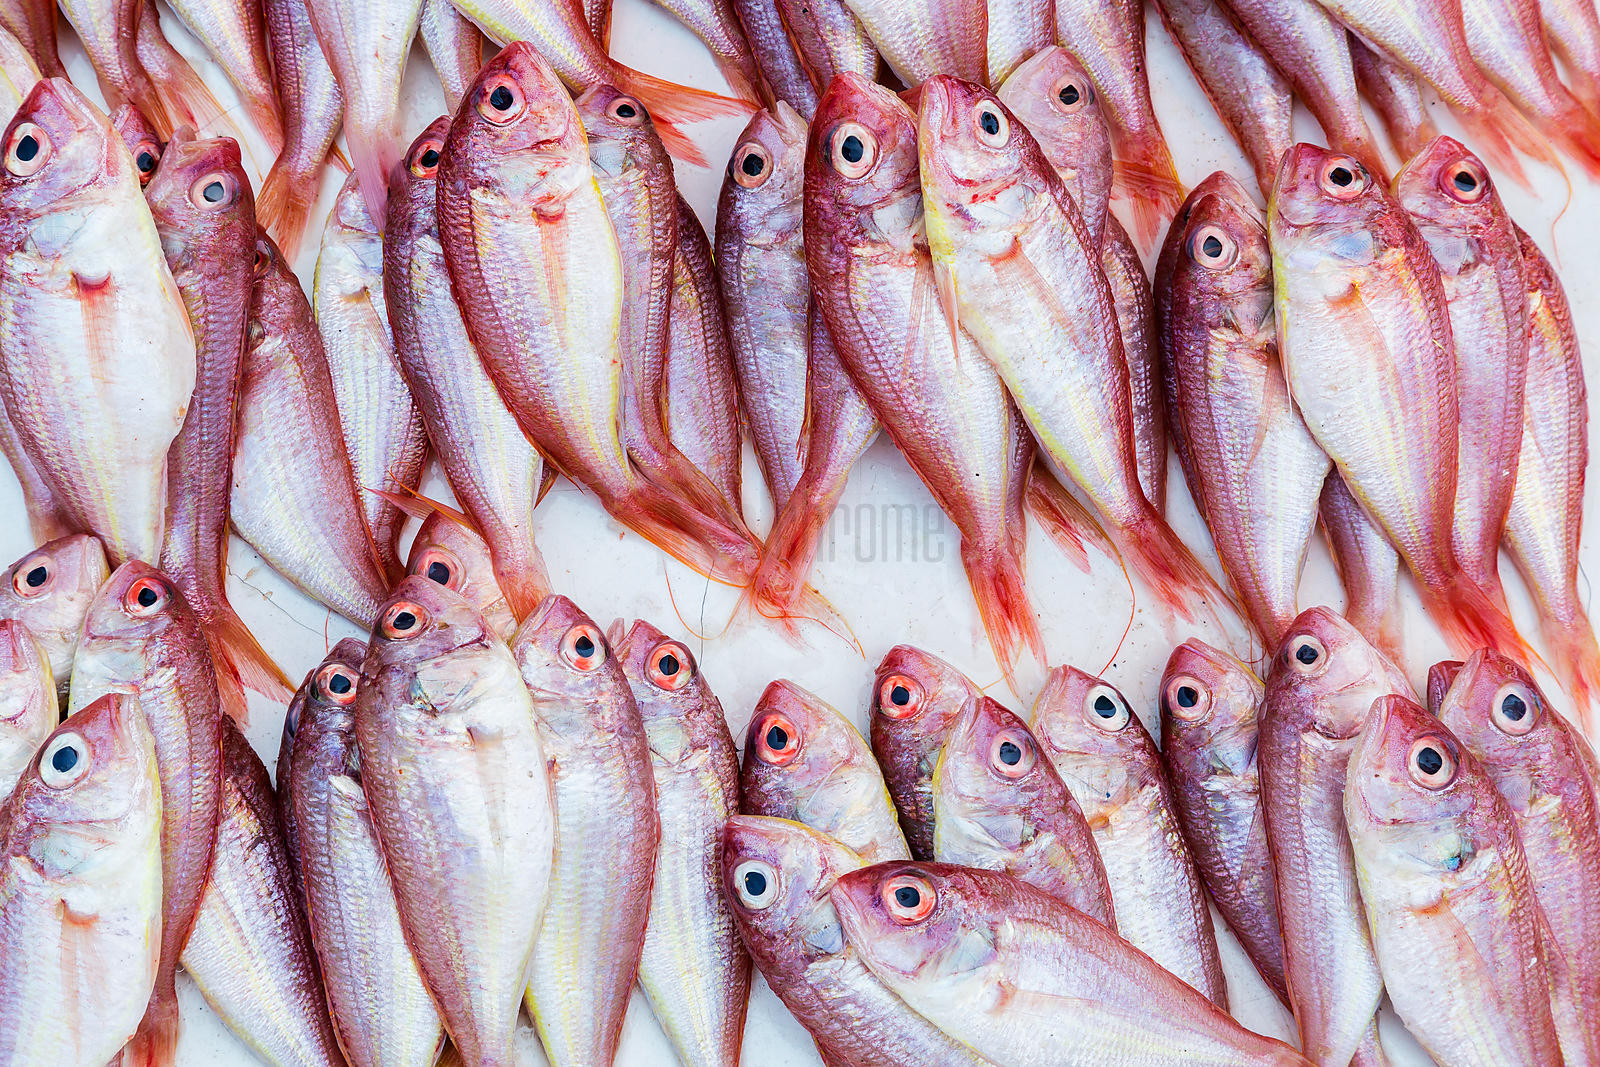 Close up of fresh fish for sale